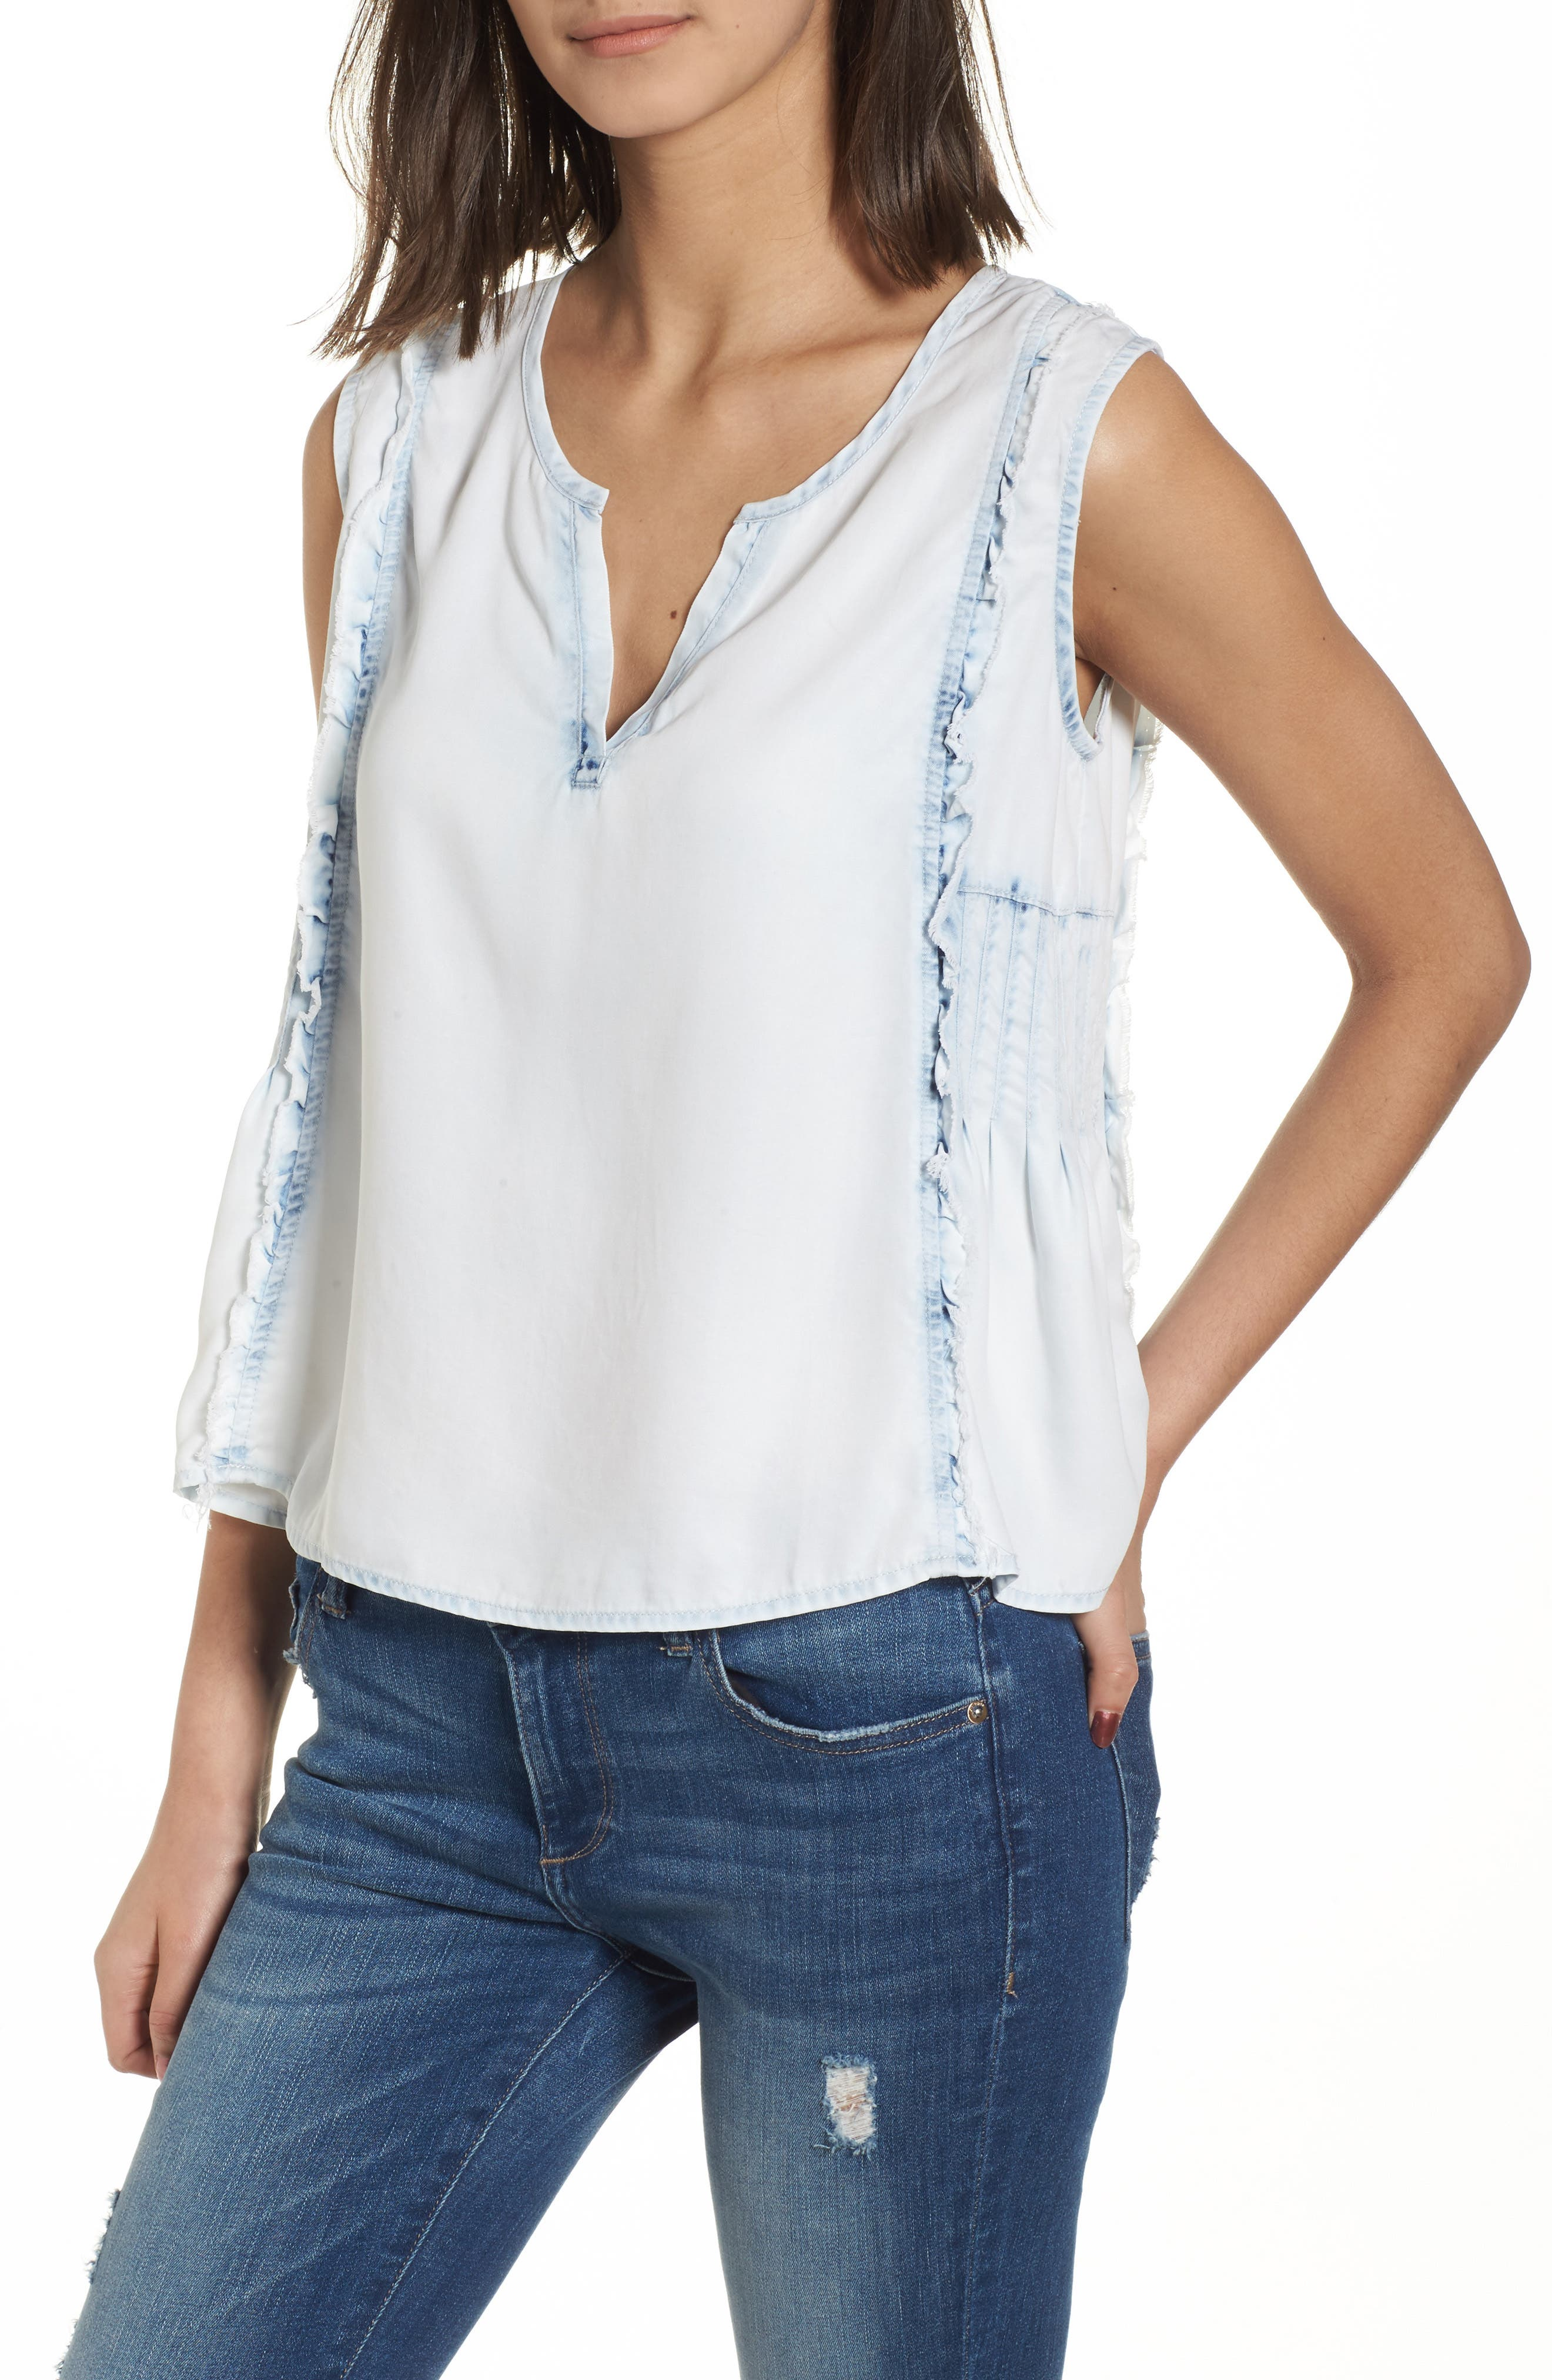 Mulberry St Chambray Top,                             Main thumbnail 1, color,                             Irregular Bleach